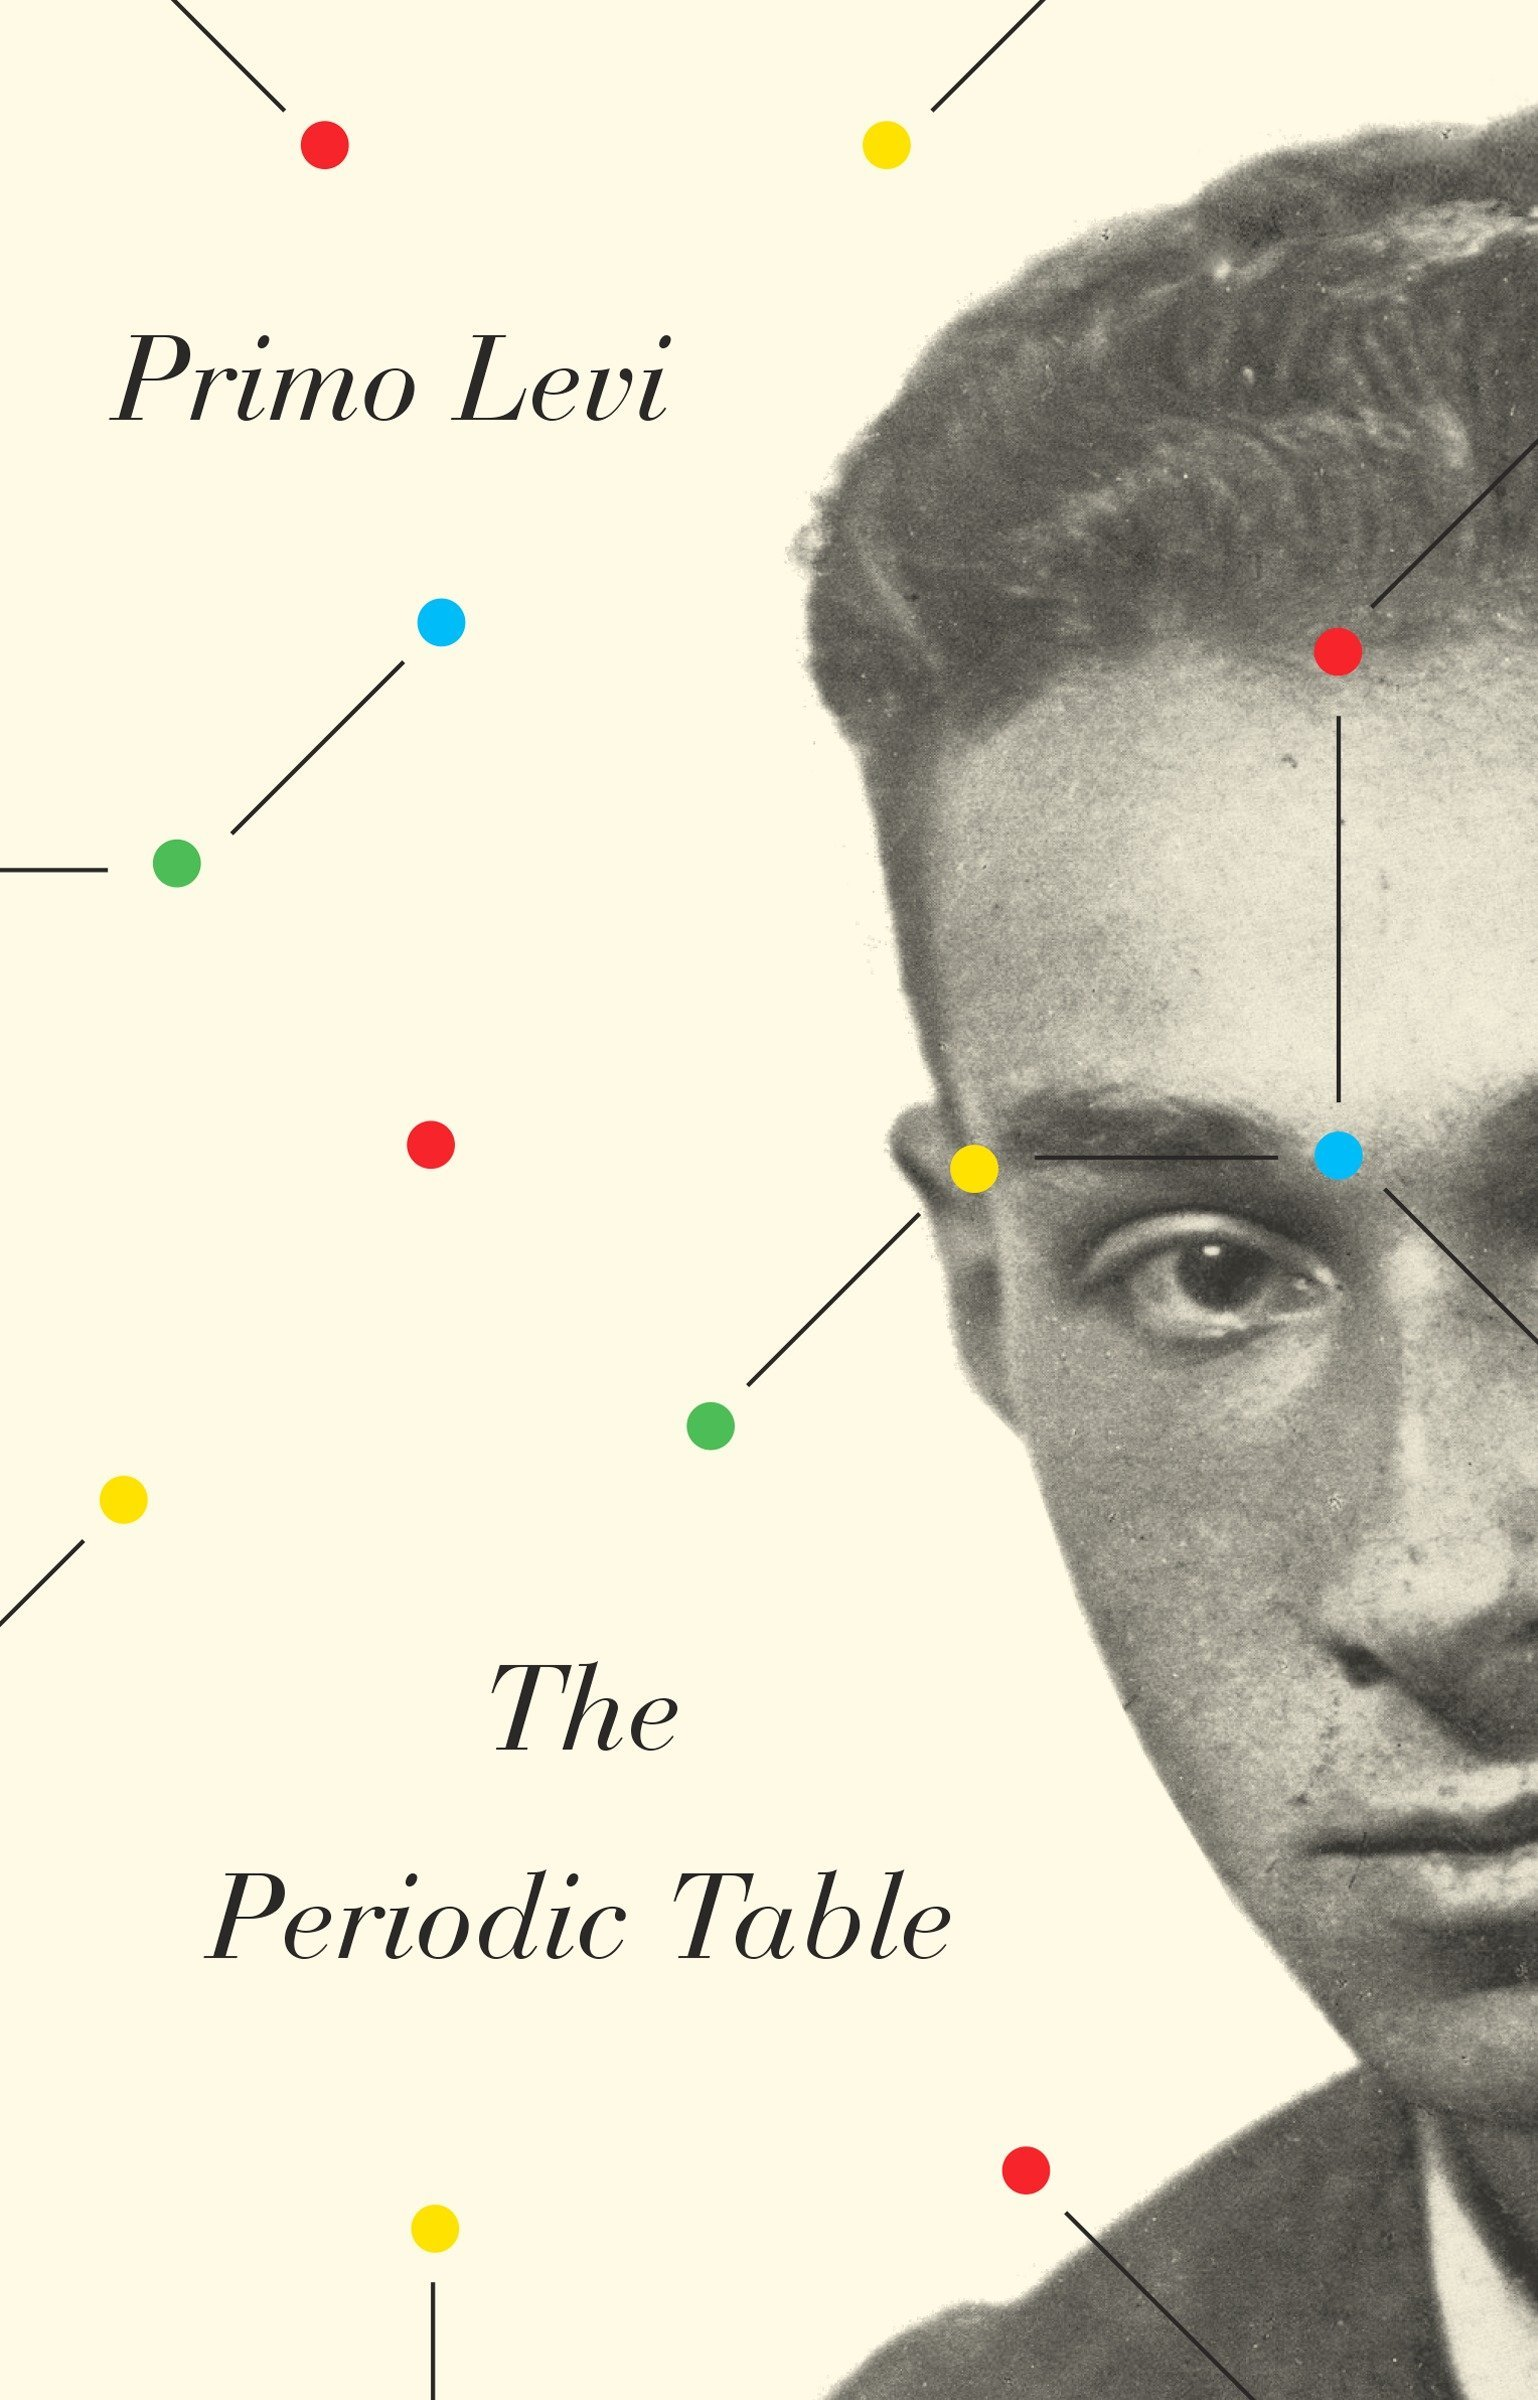 Primo Levi - The Periodic Table